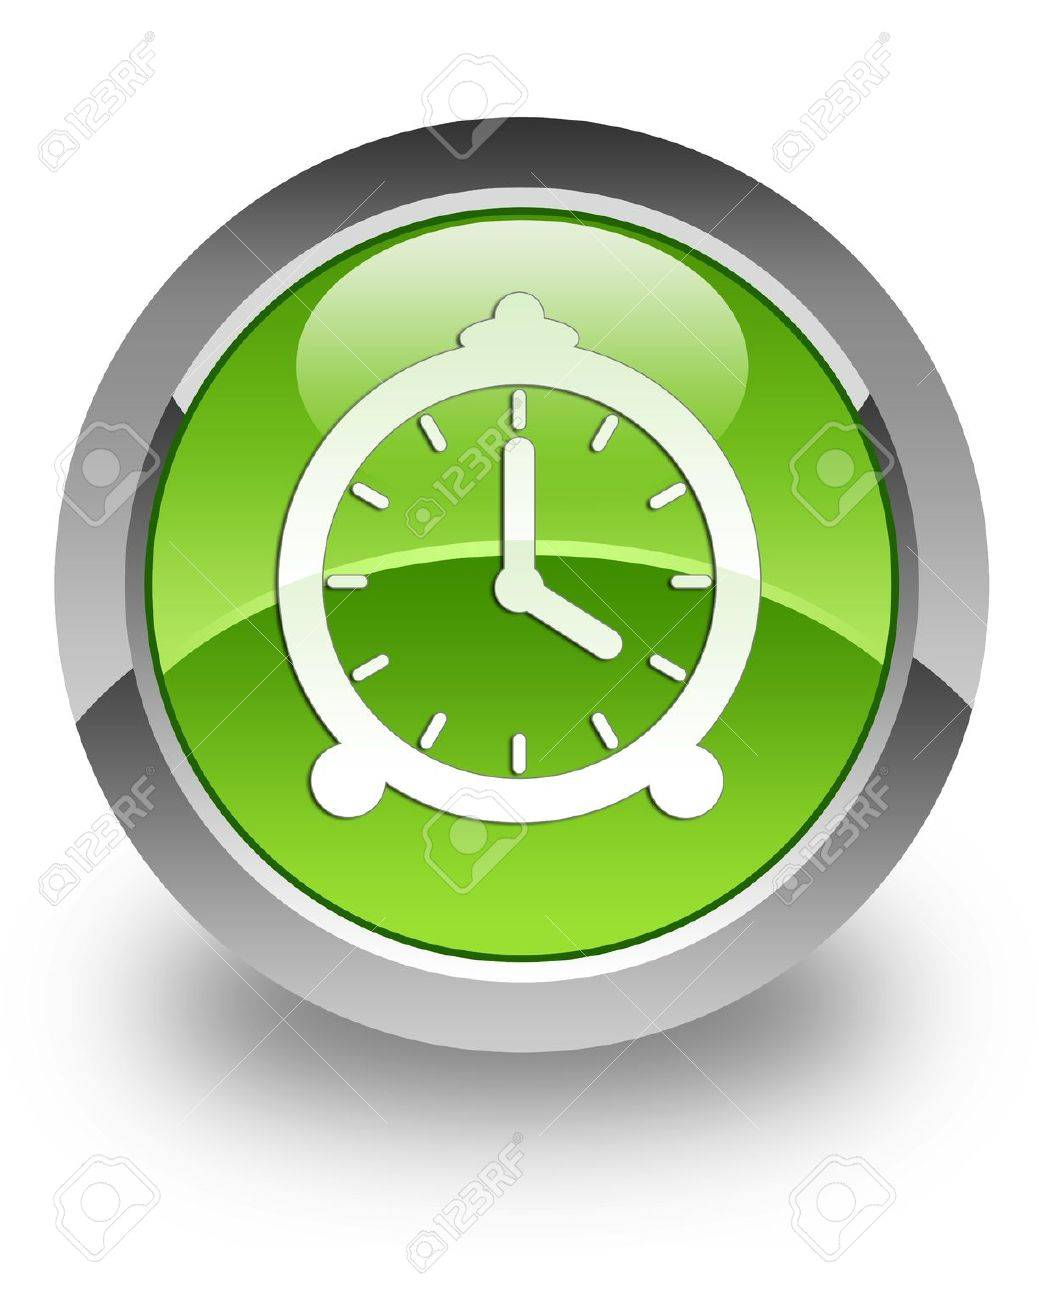 Clock icon on green glossy button Stock Photo - 13261487